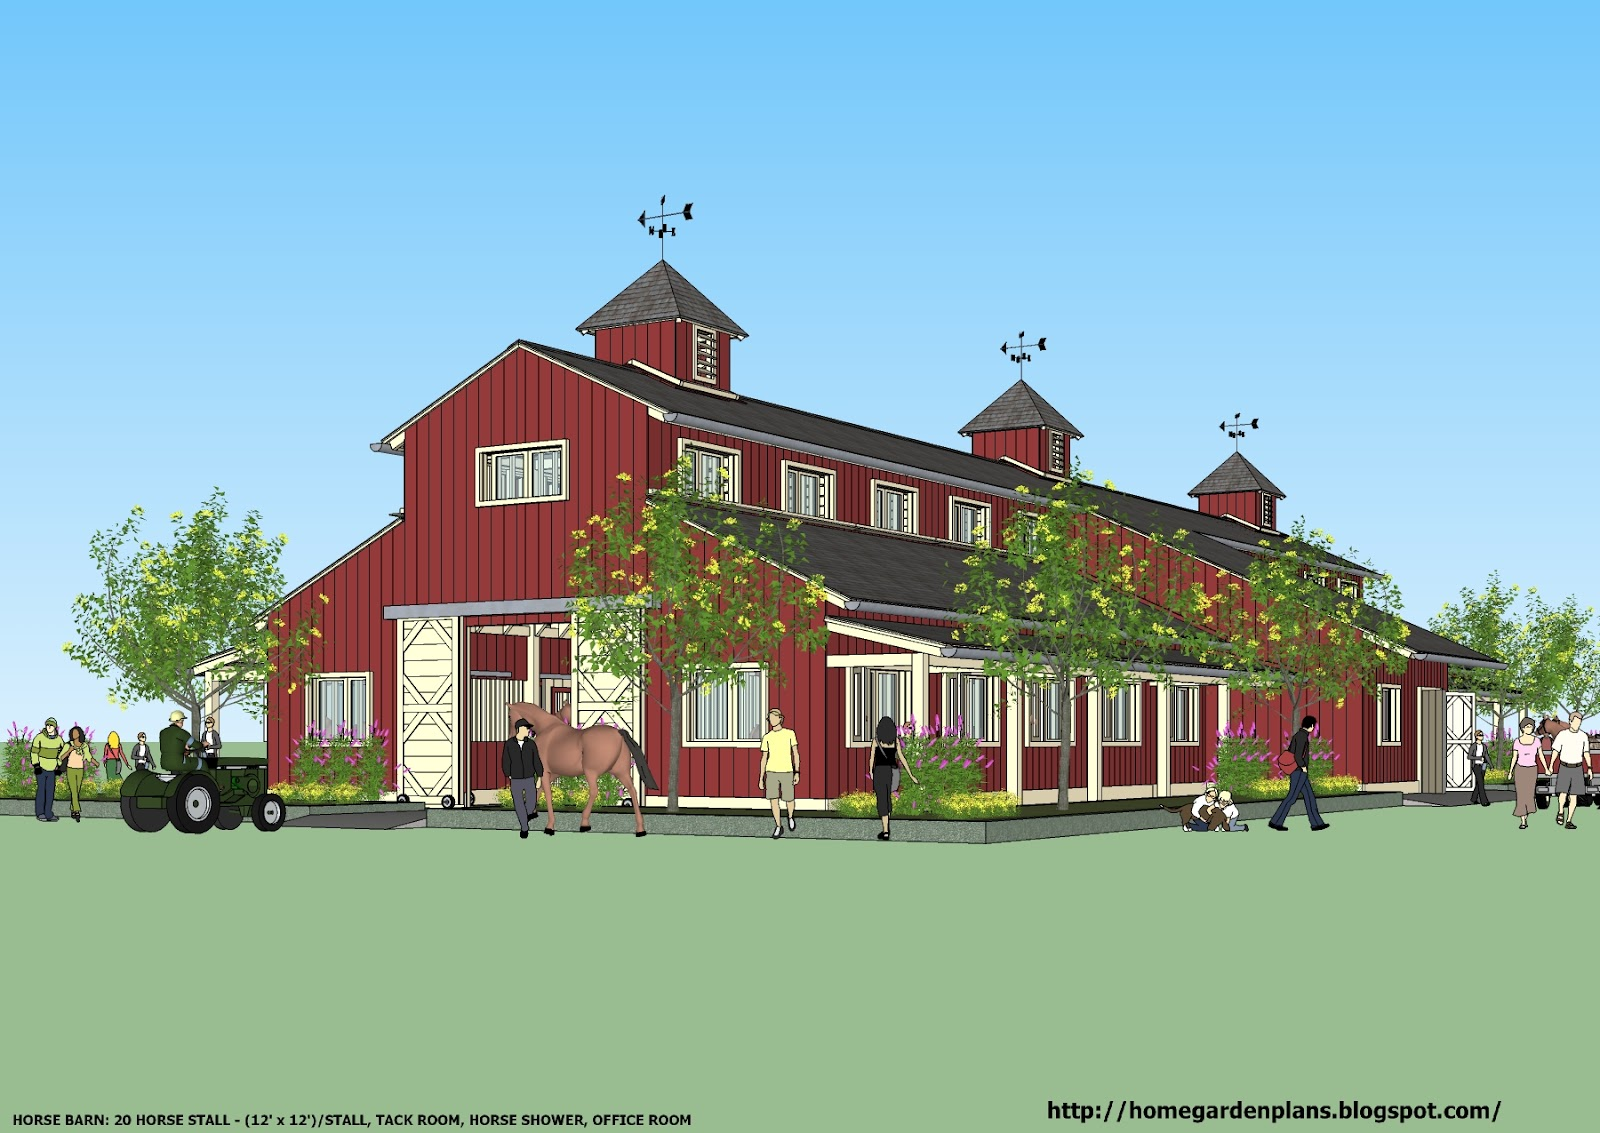 Home garden plans news b20h large horse barn plans for for Barn house designs